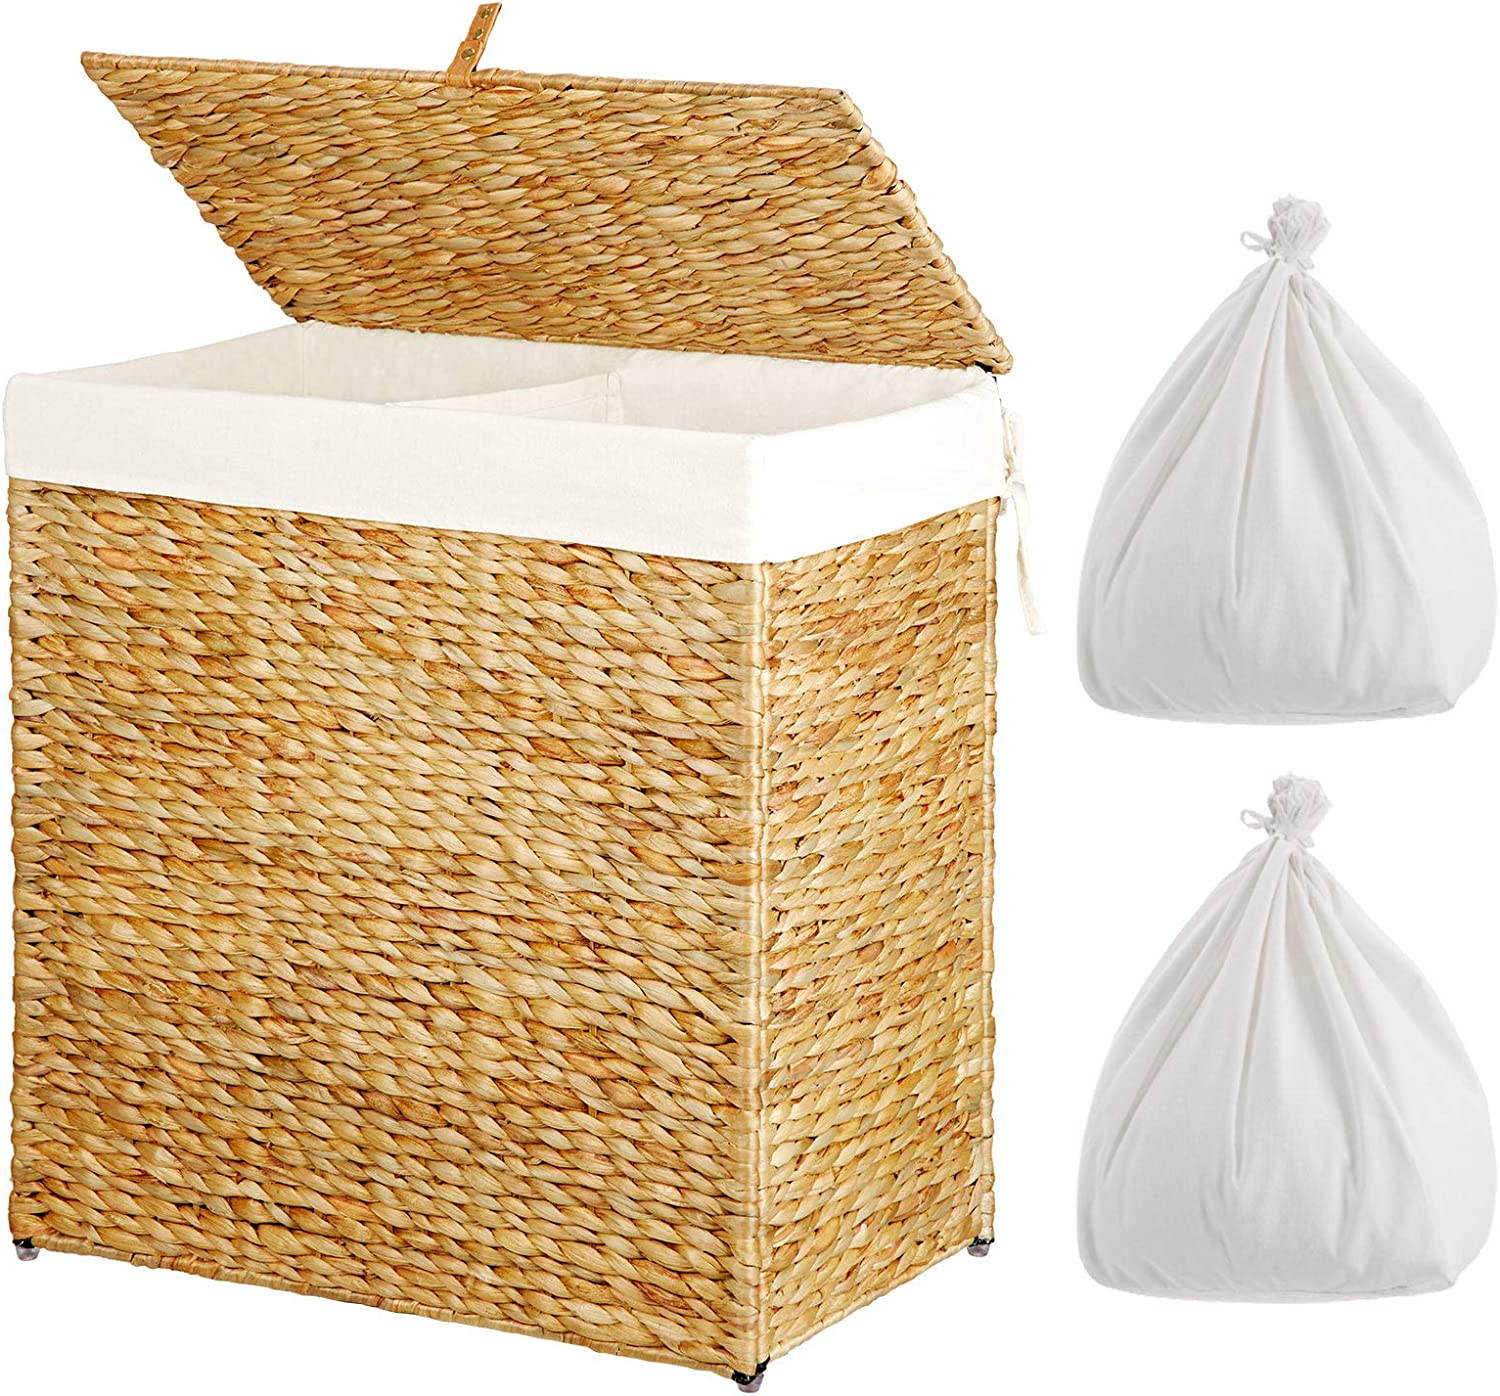 Greenstell Handwoven Seagrass Divided Clothes Laundry Hamper with 2 Removable Liner Bag, Handwoven Large Laundry Basket with Lid and Handles, Foldable and Easy to Install Natural (Large Size)